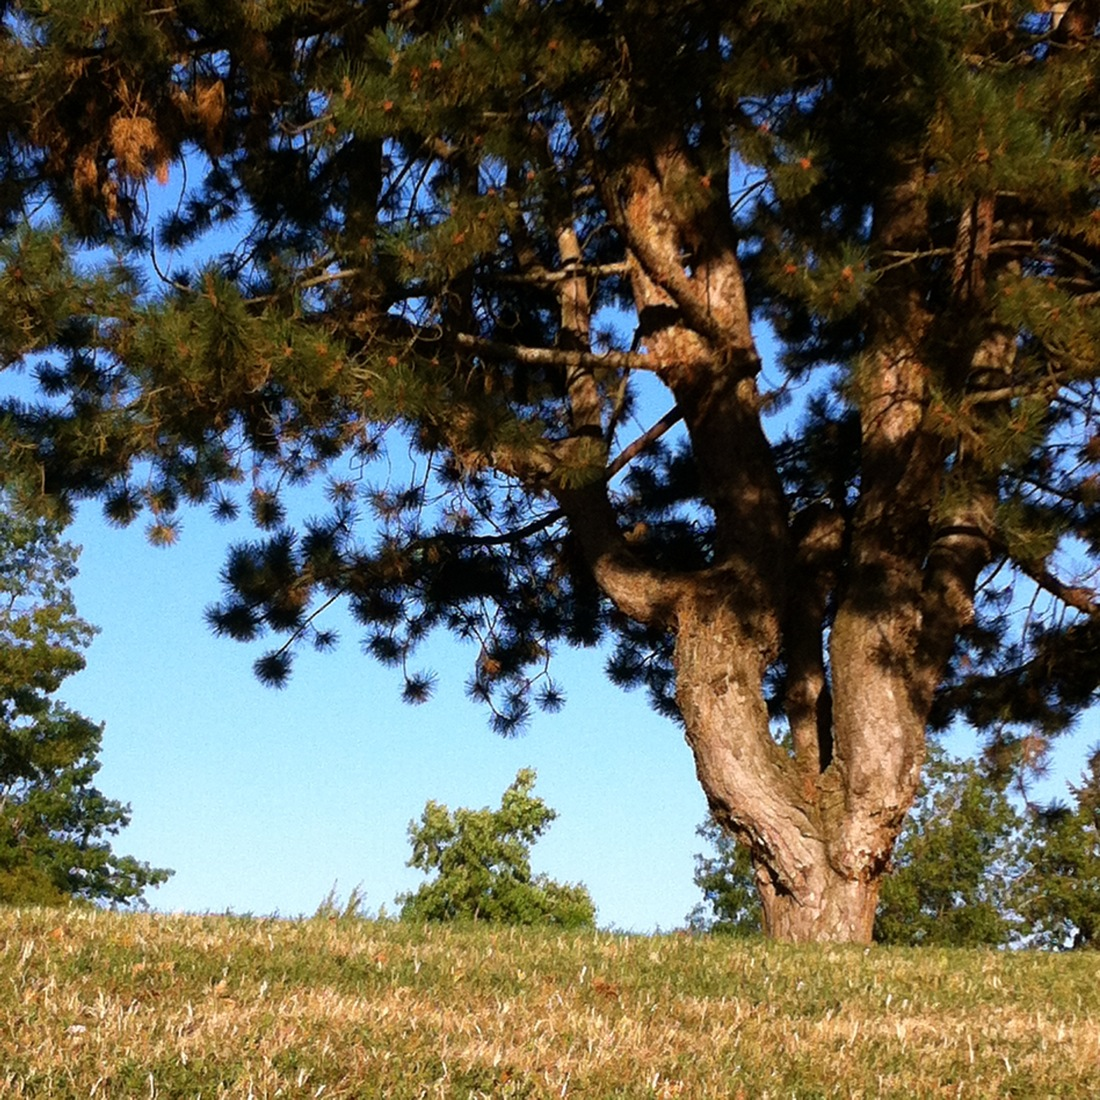 pine tree in shadow and light, shadow and light, summer shadow and light, pine tree in the park, summer pine tree